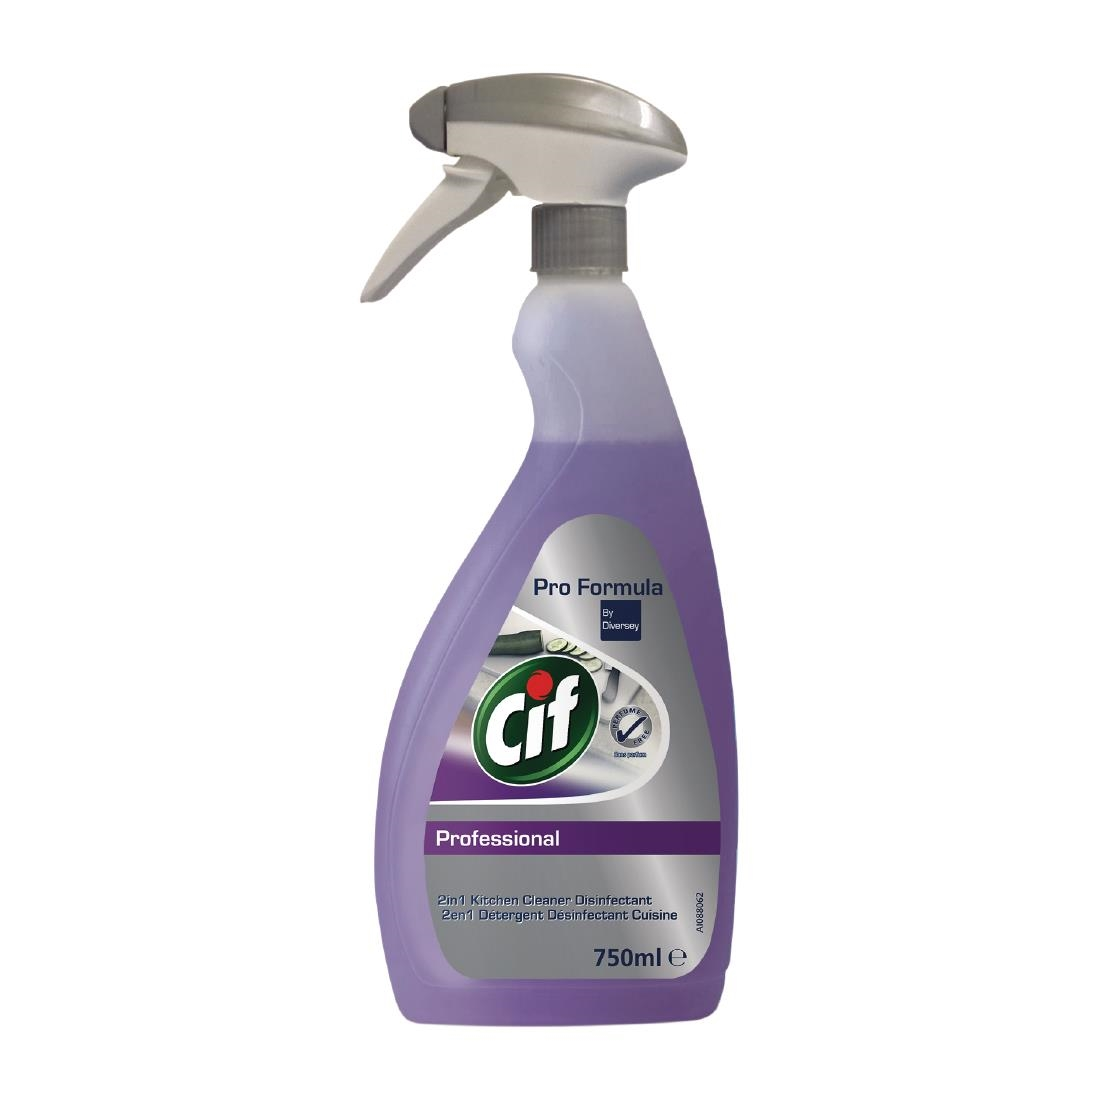 Image of Cif Pro Formula 2-in-1 Cleaner and Disinfectant Ready To Use 750ml (6 Pack) Pack of 6